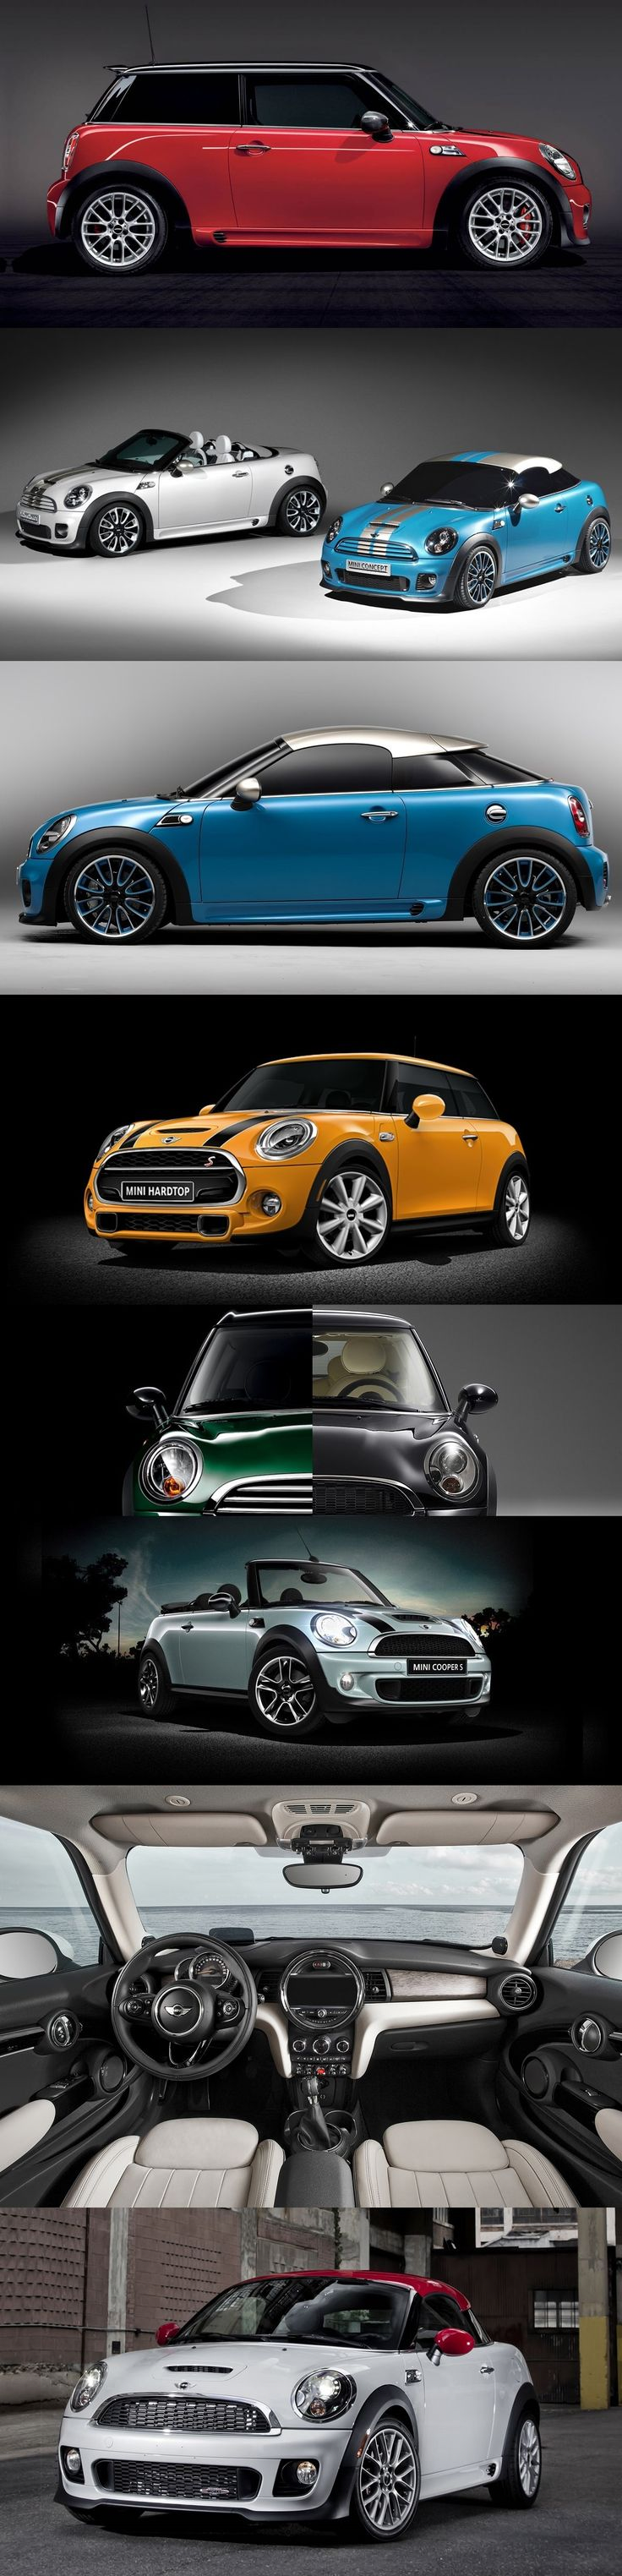 Mini coopers for sale welcome to ruelspot com we have a large inventory